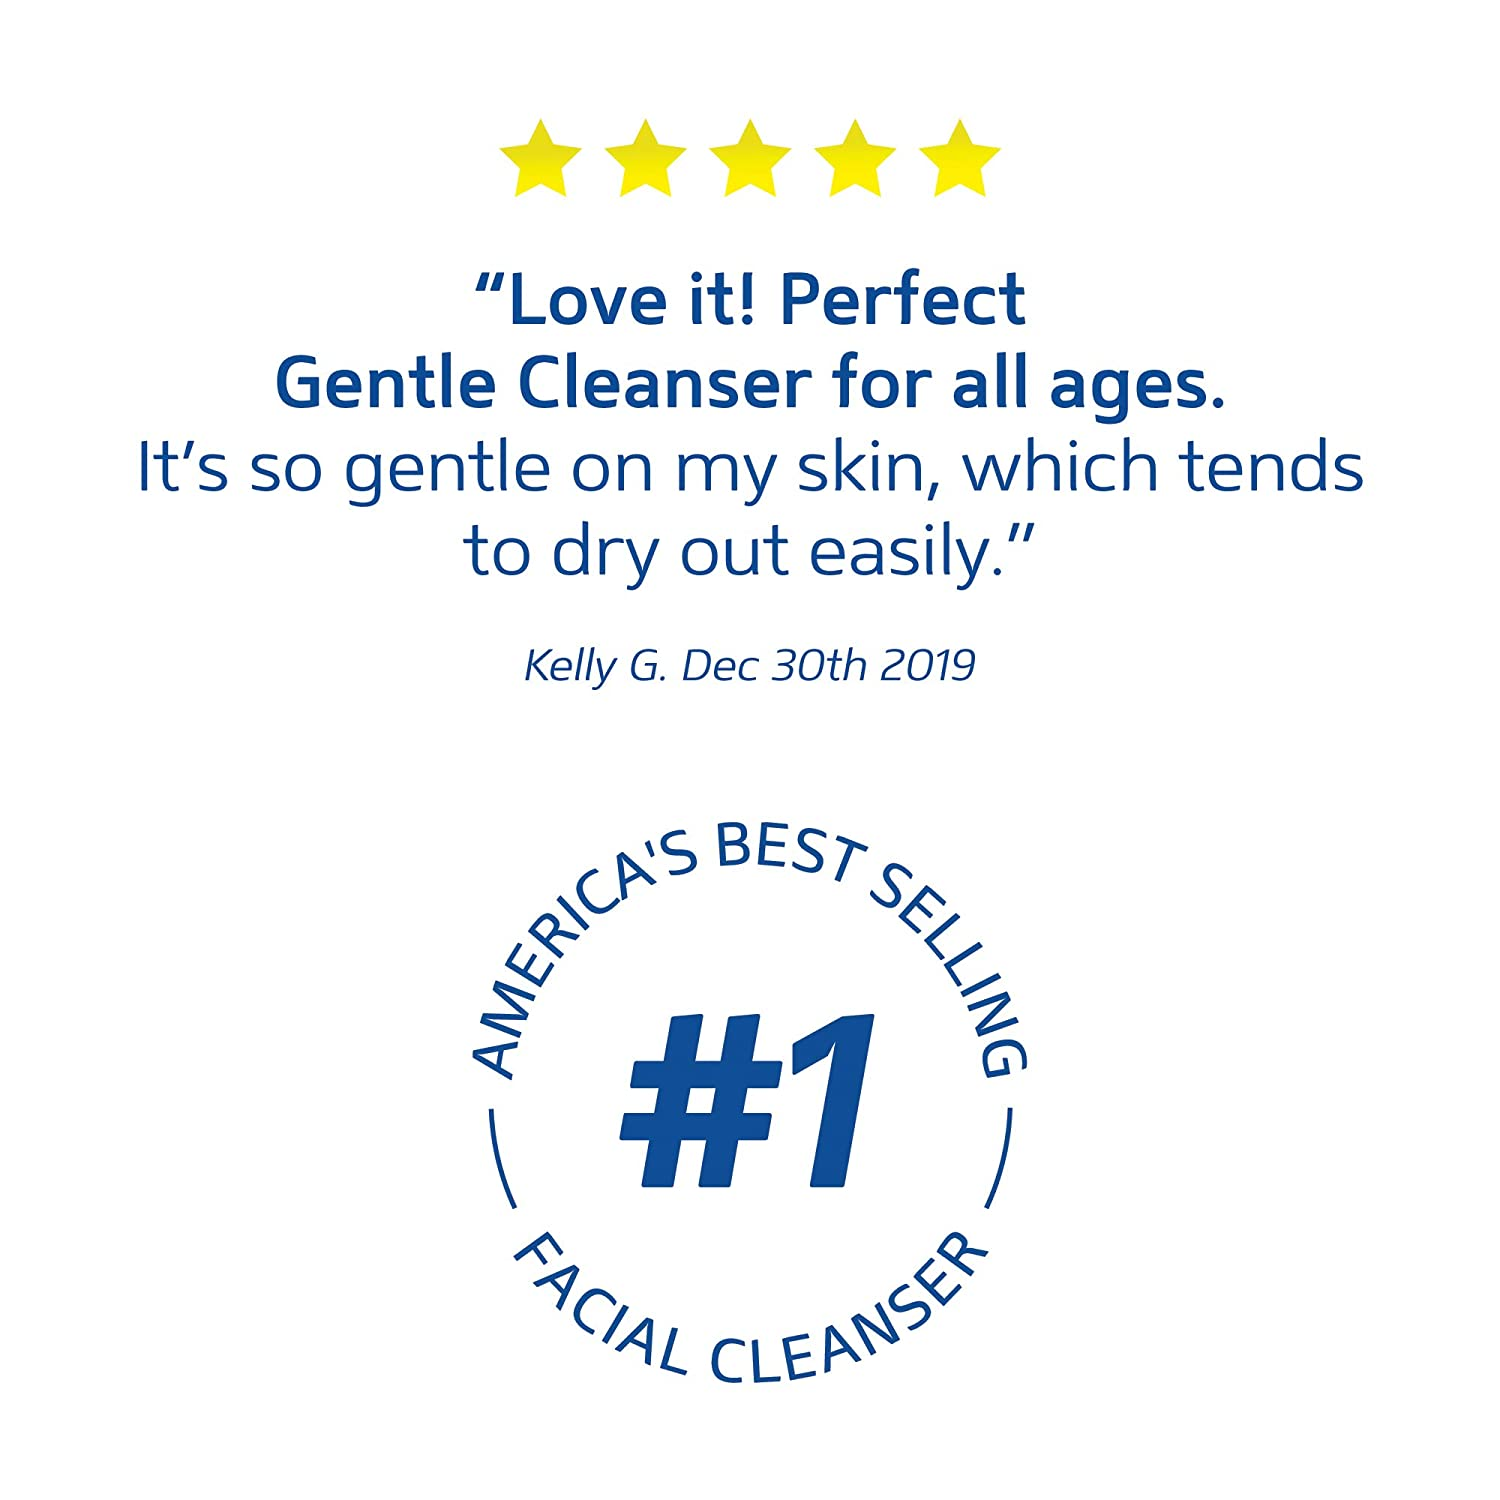 Cetaphil Gentle Skin Cleanser | 16 fl Oz (Pack of 2) | Hydrating Face Wash & Body Wash | Ideal for Sensitive, Dry Skin | Non-Irritating | Won't Clog Pores | Fragrance-Free | Dermatologist Recommended: Beauty